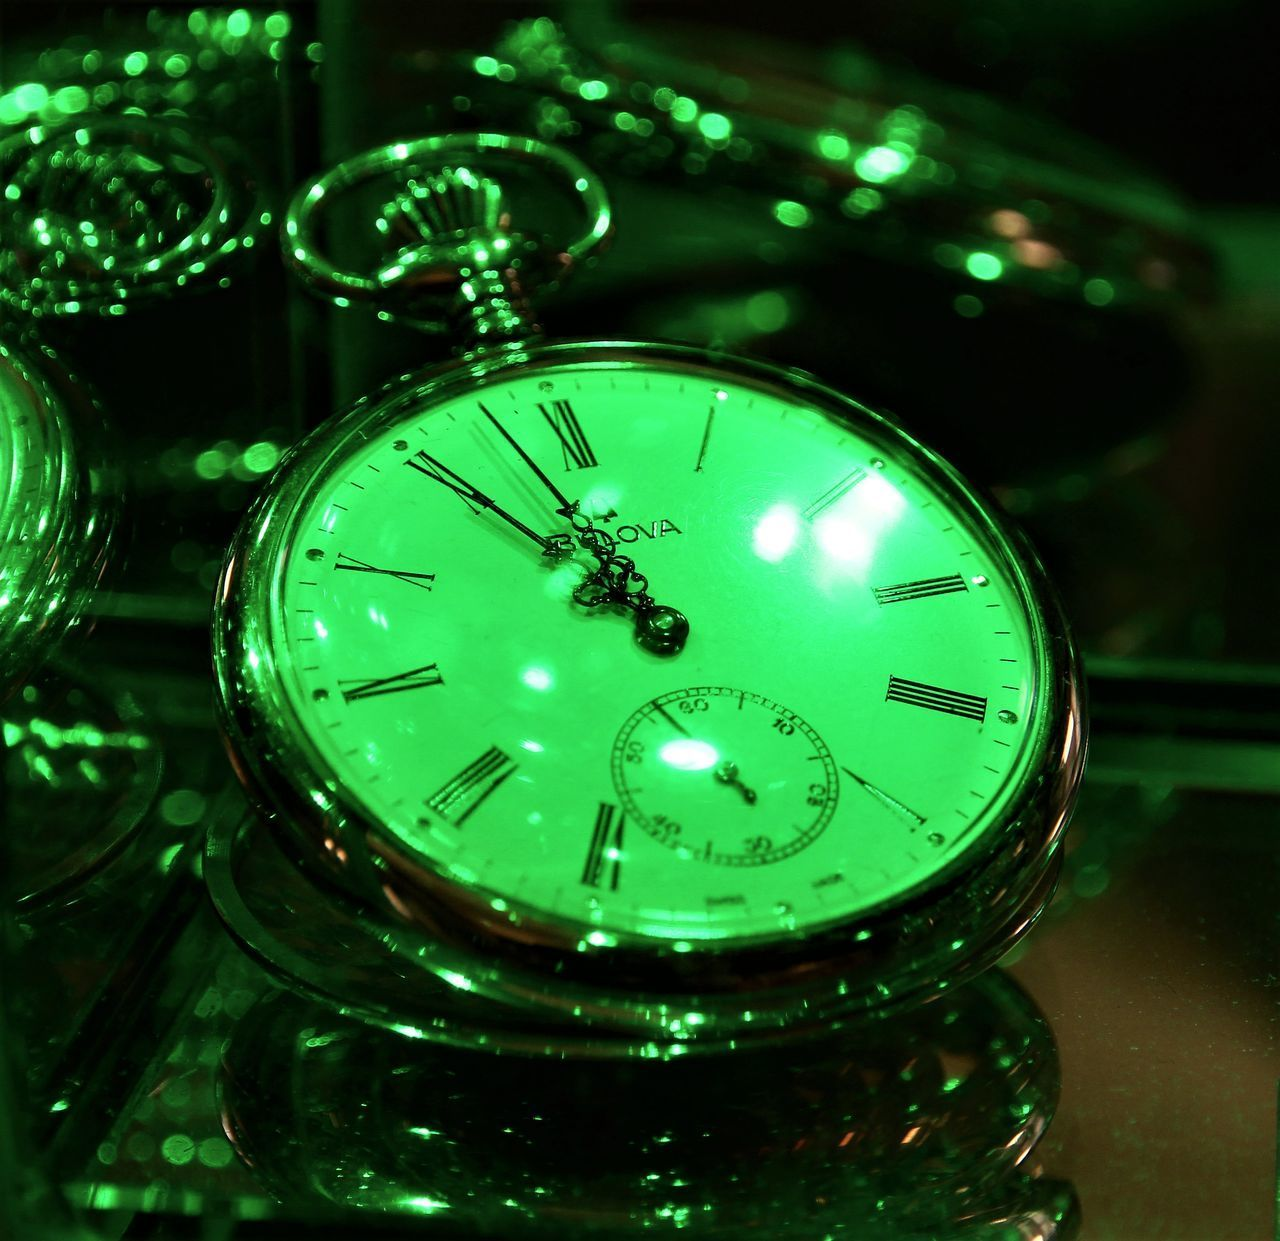 illuminated, green color, close-up, indoors, no people, night, time, clock